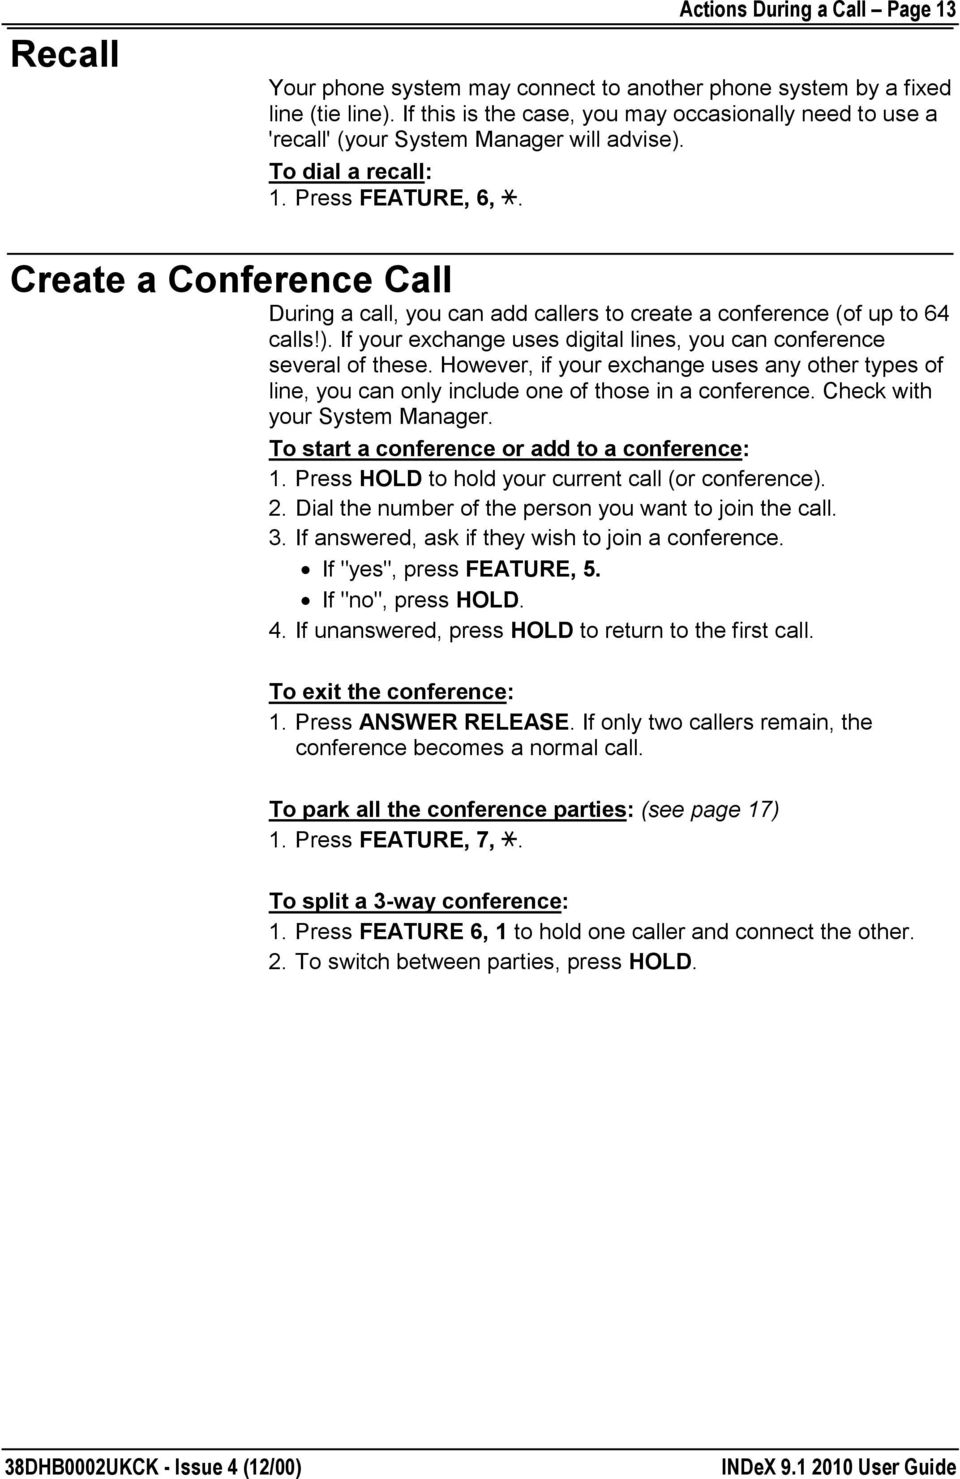 Create a Conference Call During a call, you can add callers to create a conference (of up to 64 calls!). If your exchange uses digital lines, you can conference several of these.